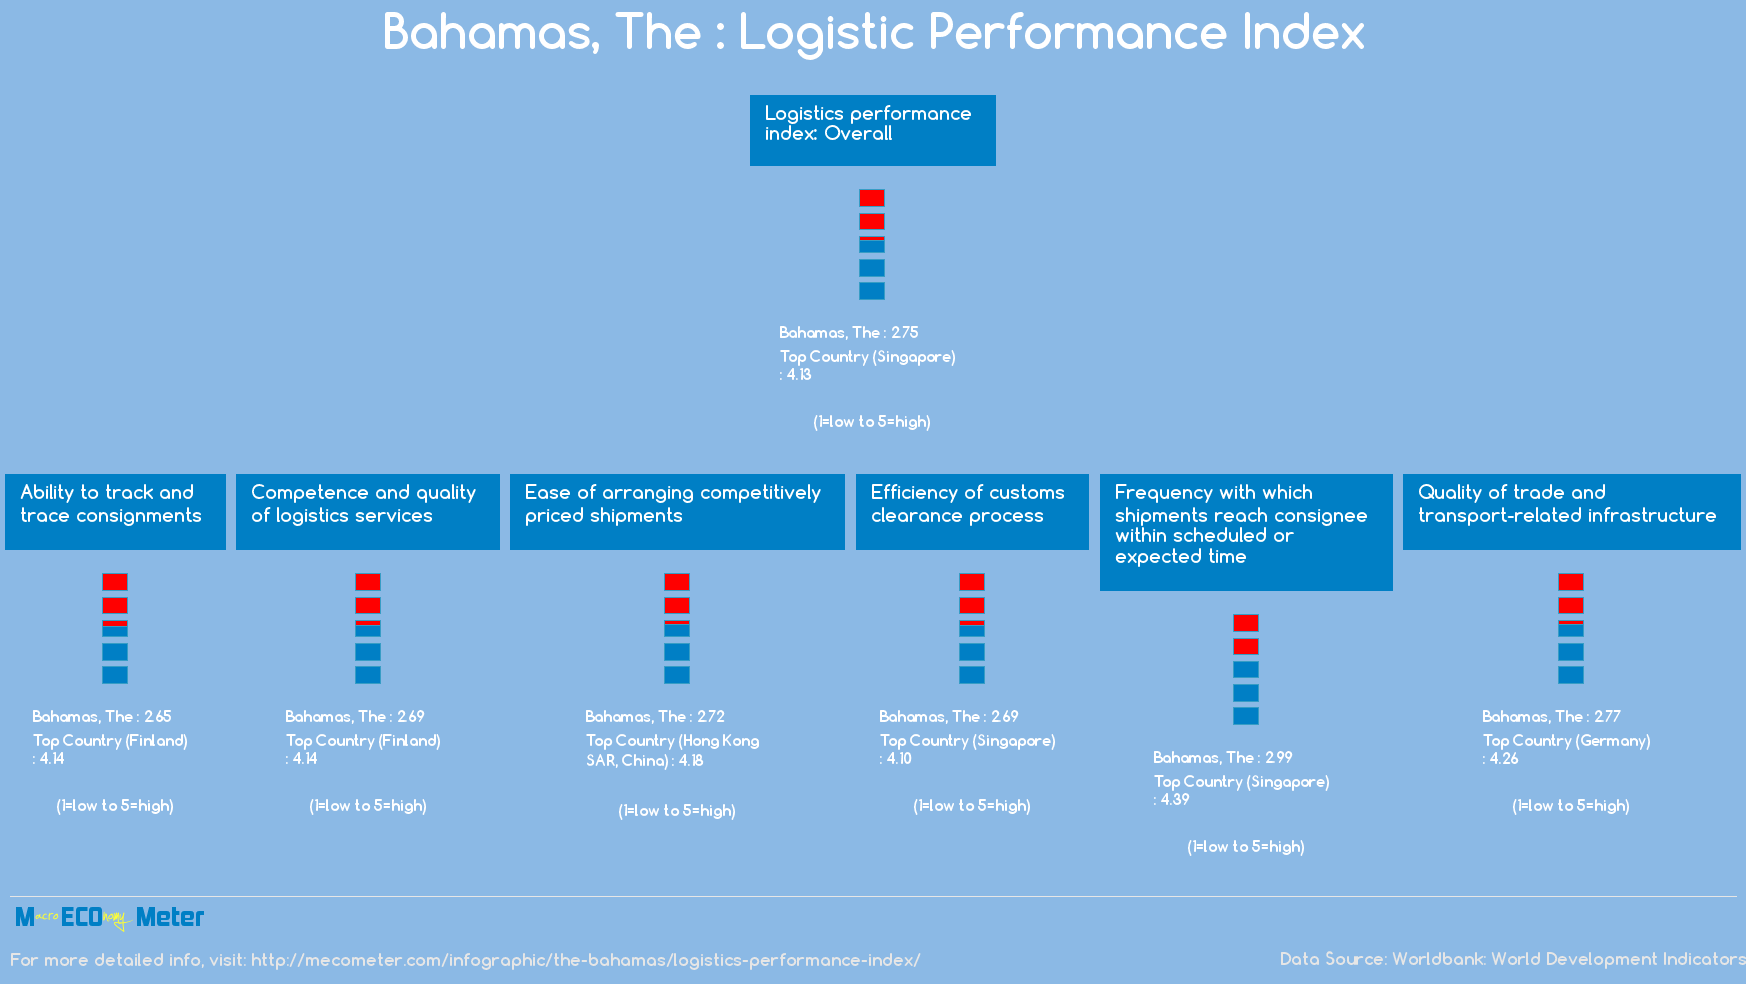 The Bahamas : Logistic Performance Index